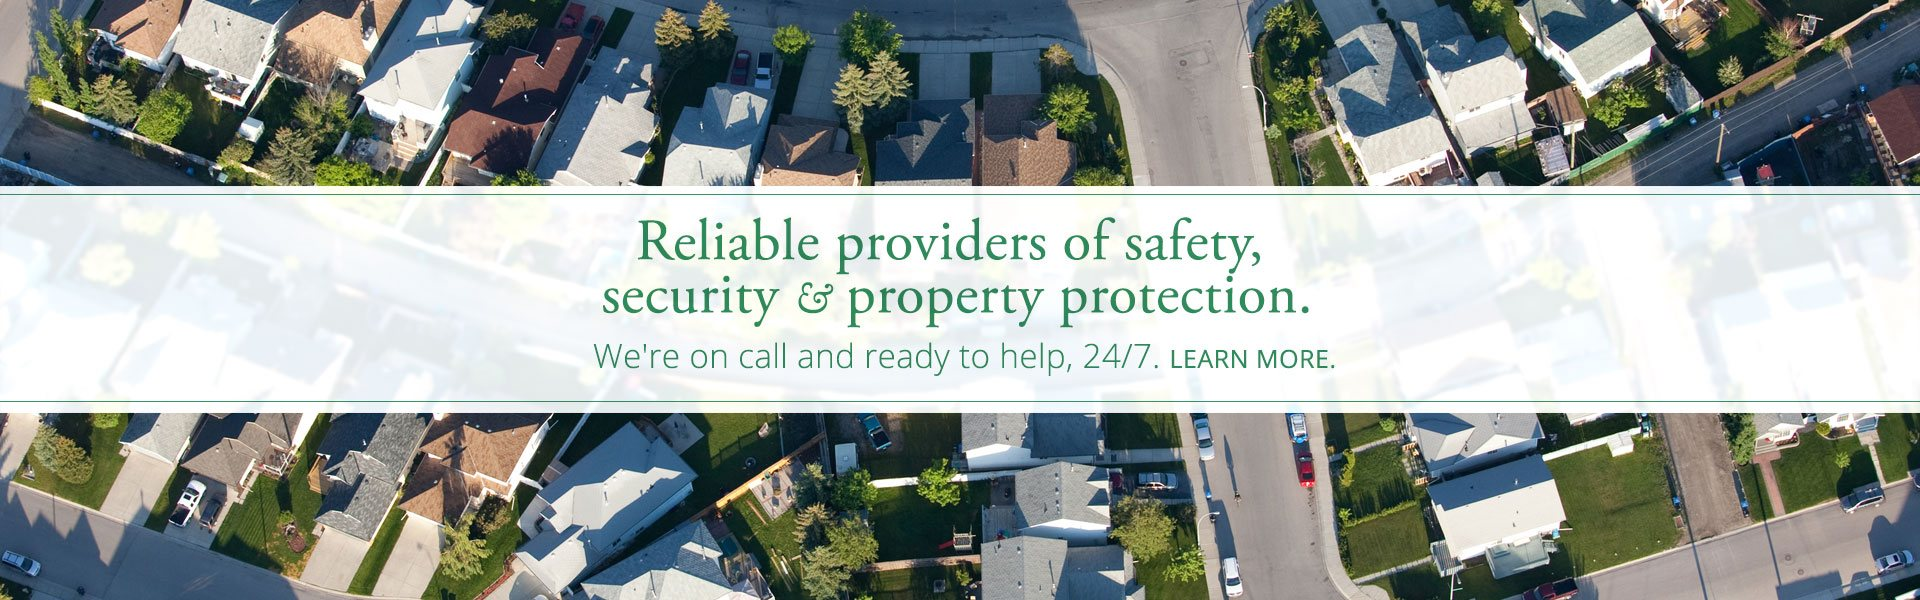 Safety & Security for your Property – 24/7 Support | Emerald Property Management